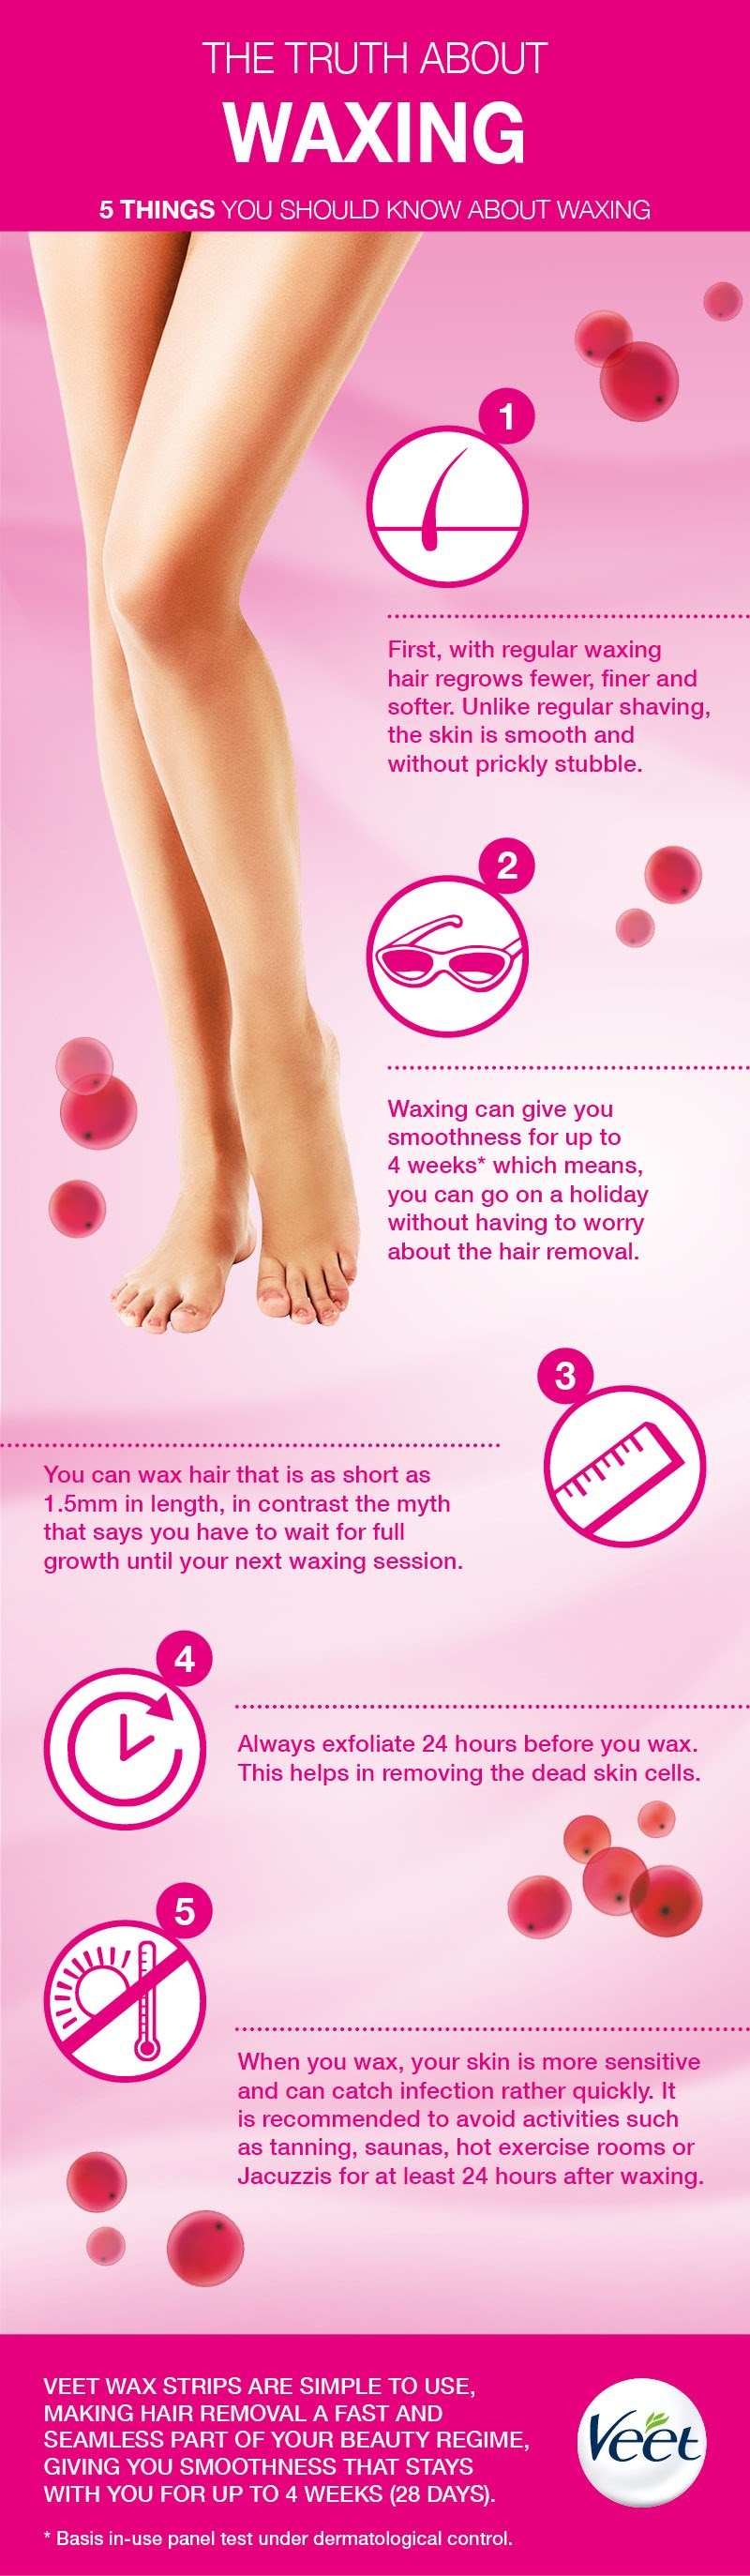 Waxing At Home How To Do Waxing At Home Veet